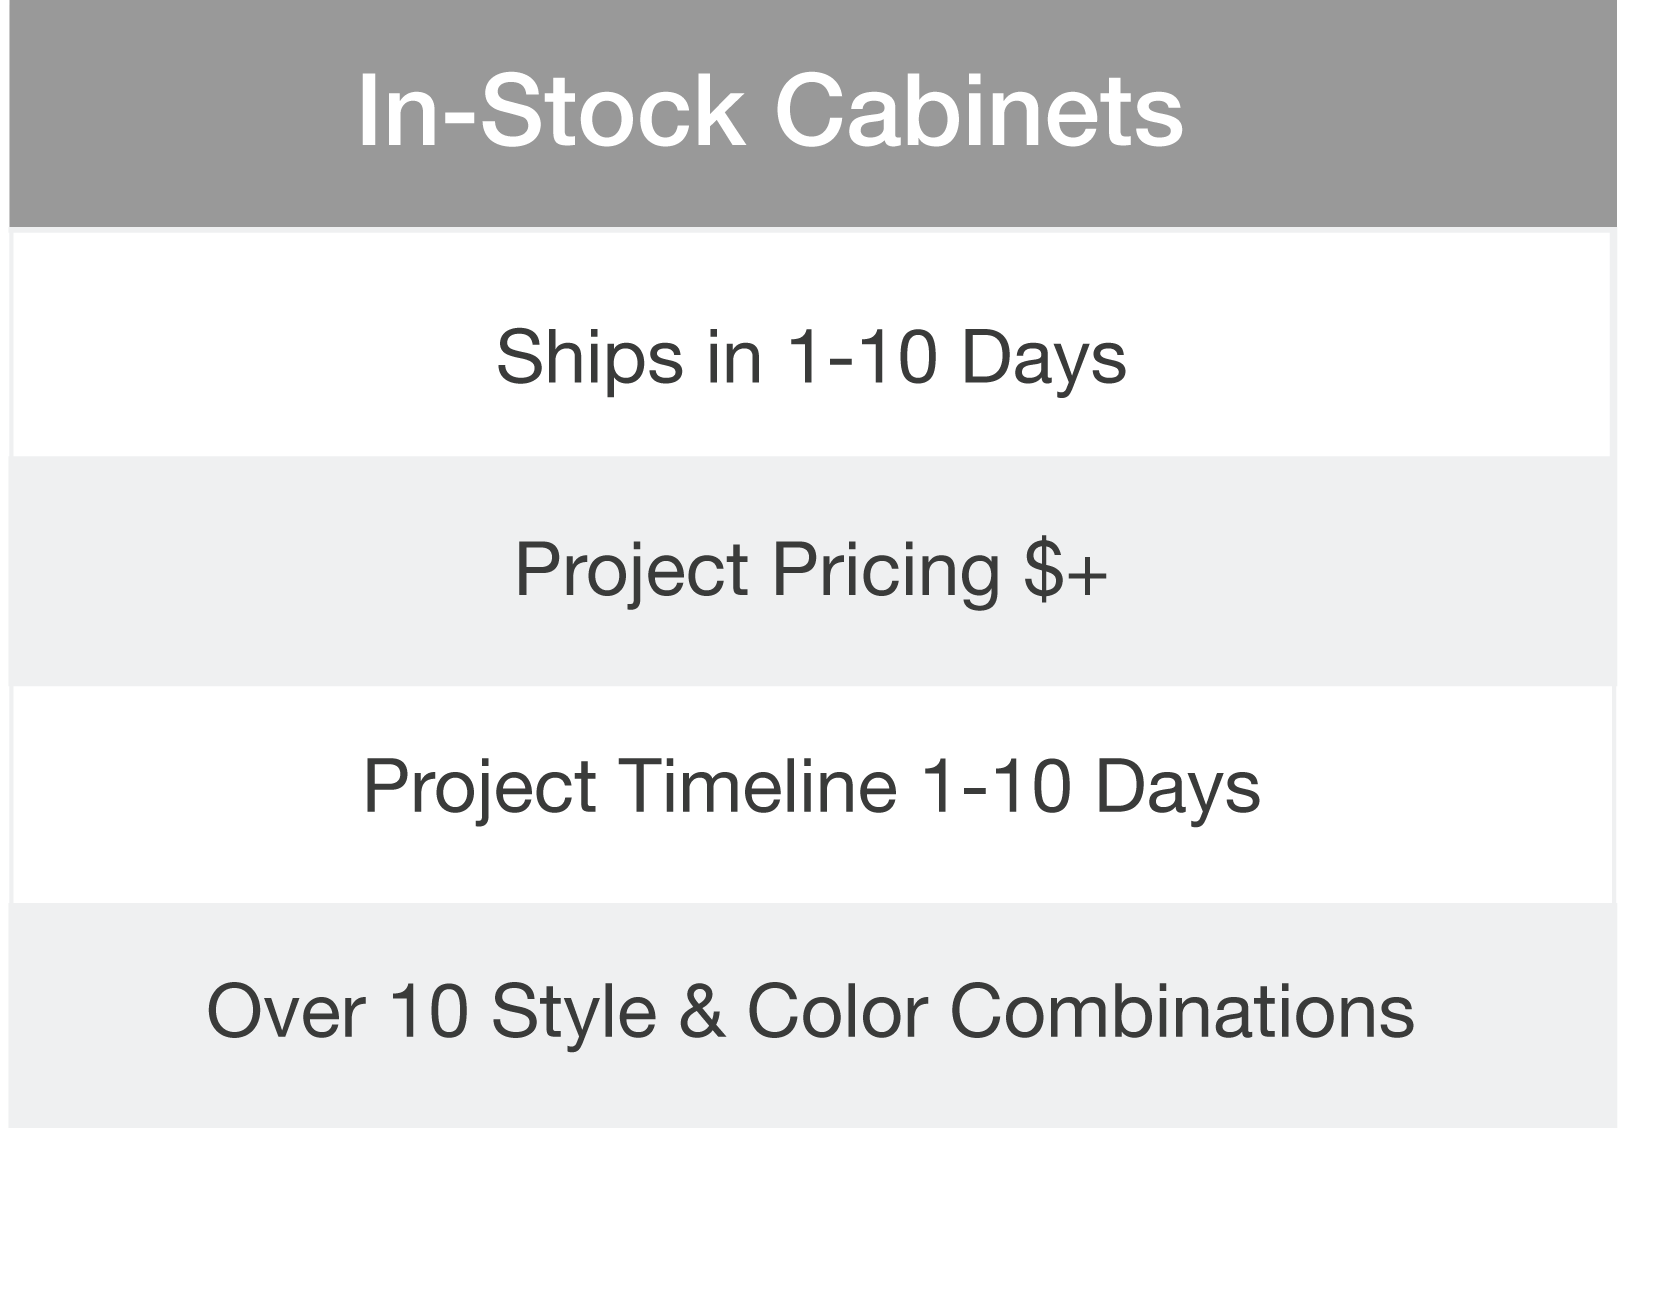 in-stock cabinets comparison chart